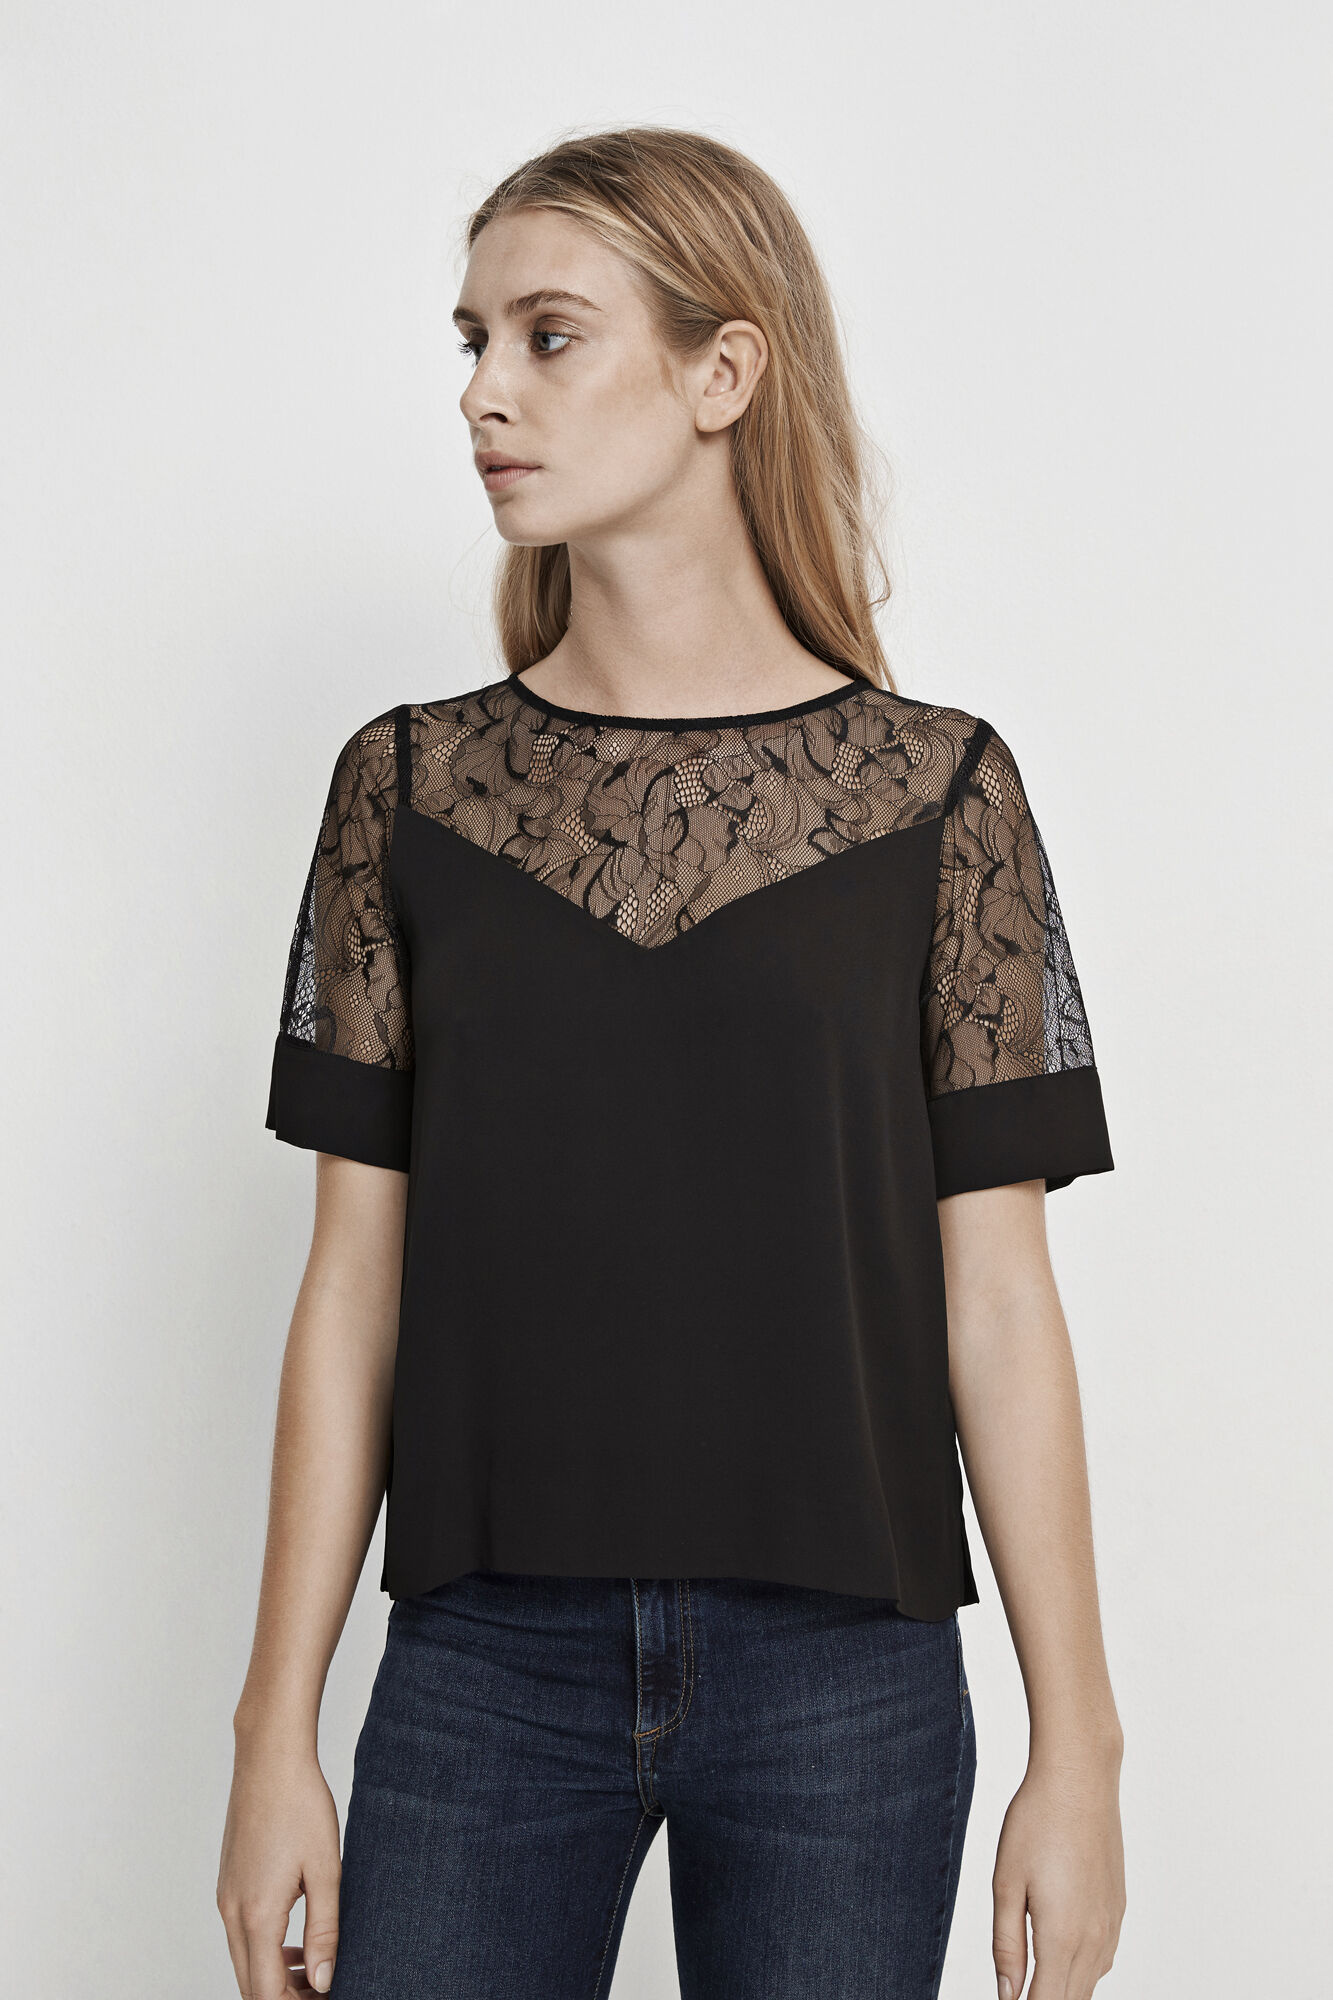 Biaf lace ss 6891